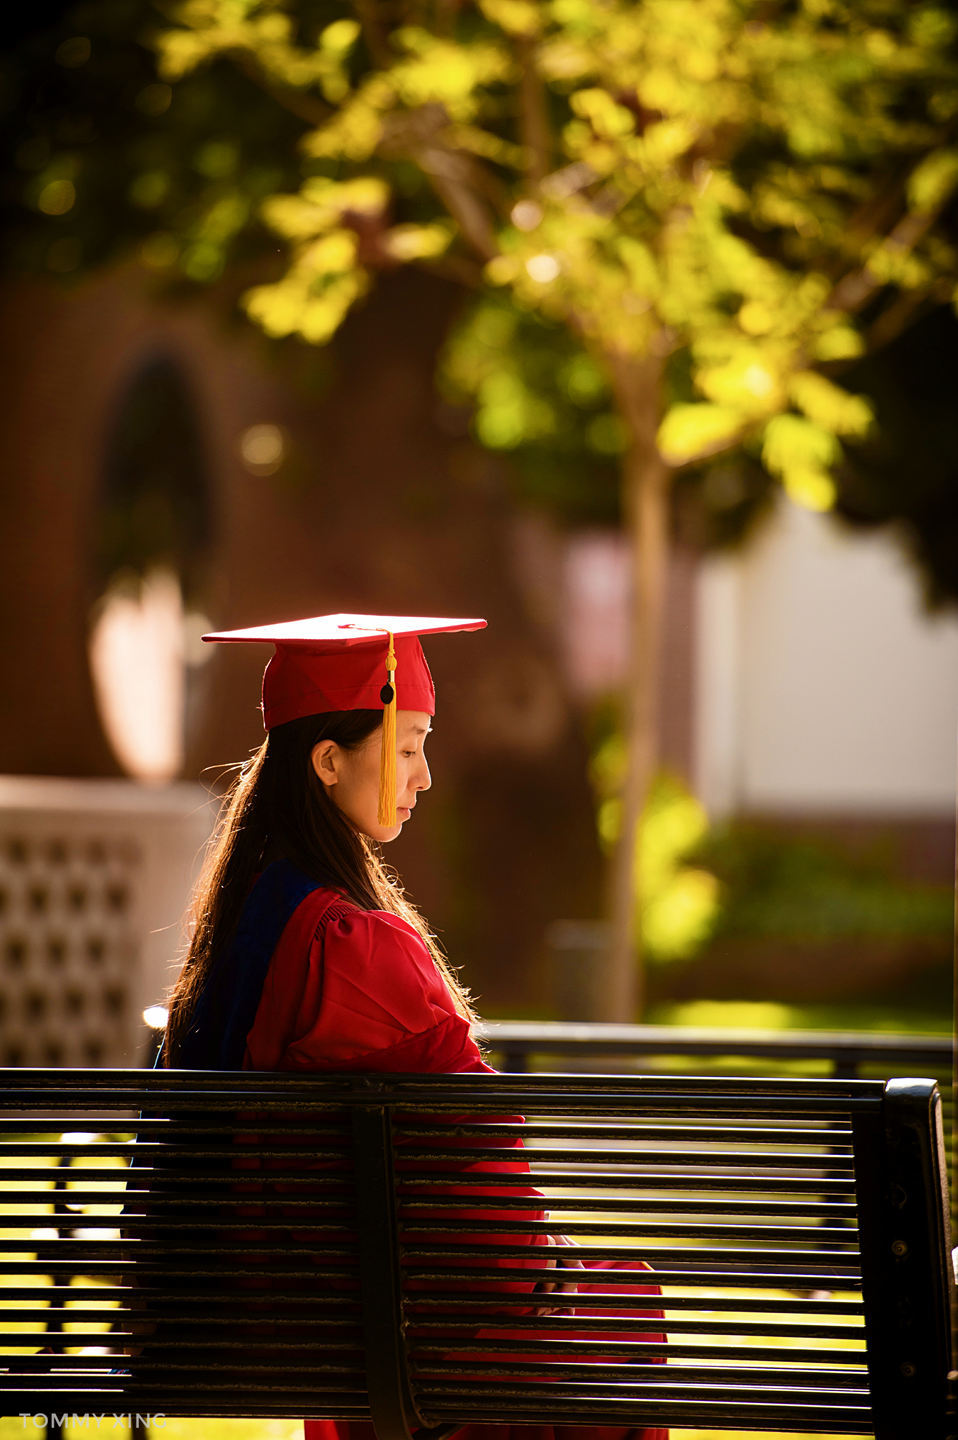 Graduation portrait photography - USC - Los Angeles - Tommy Xing Photography 03.jpg